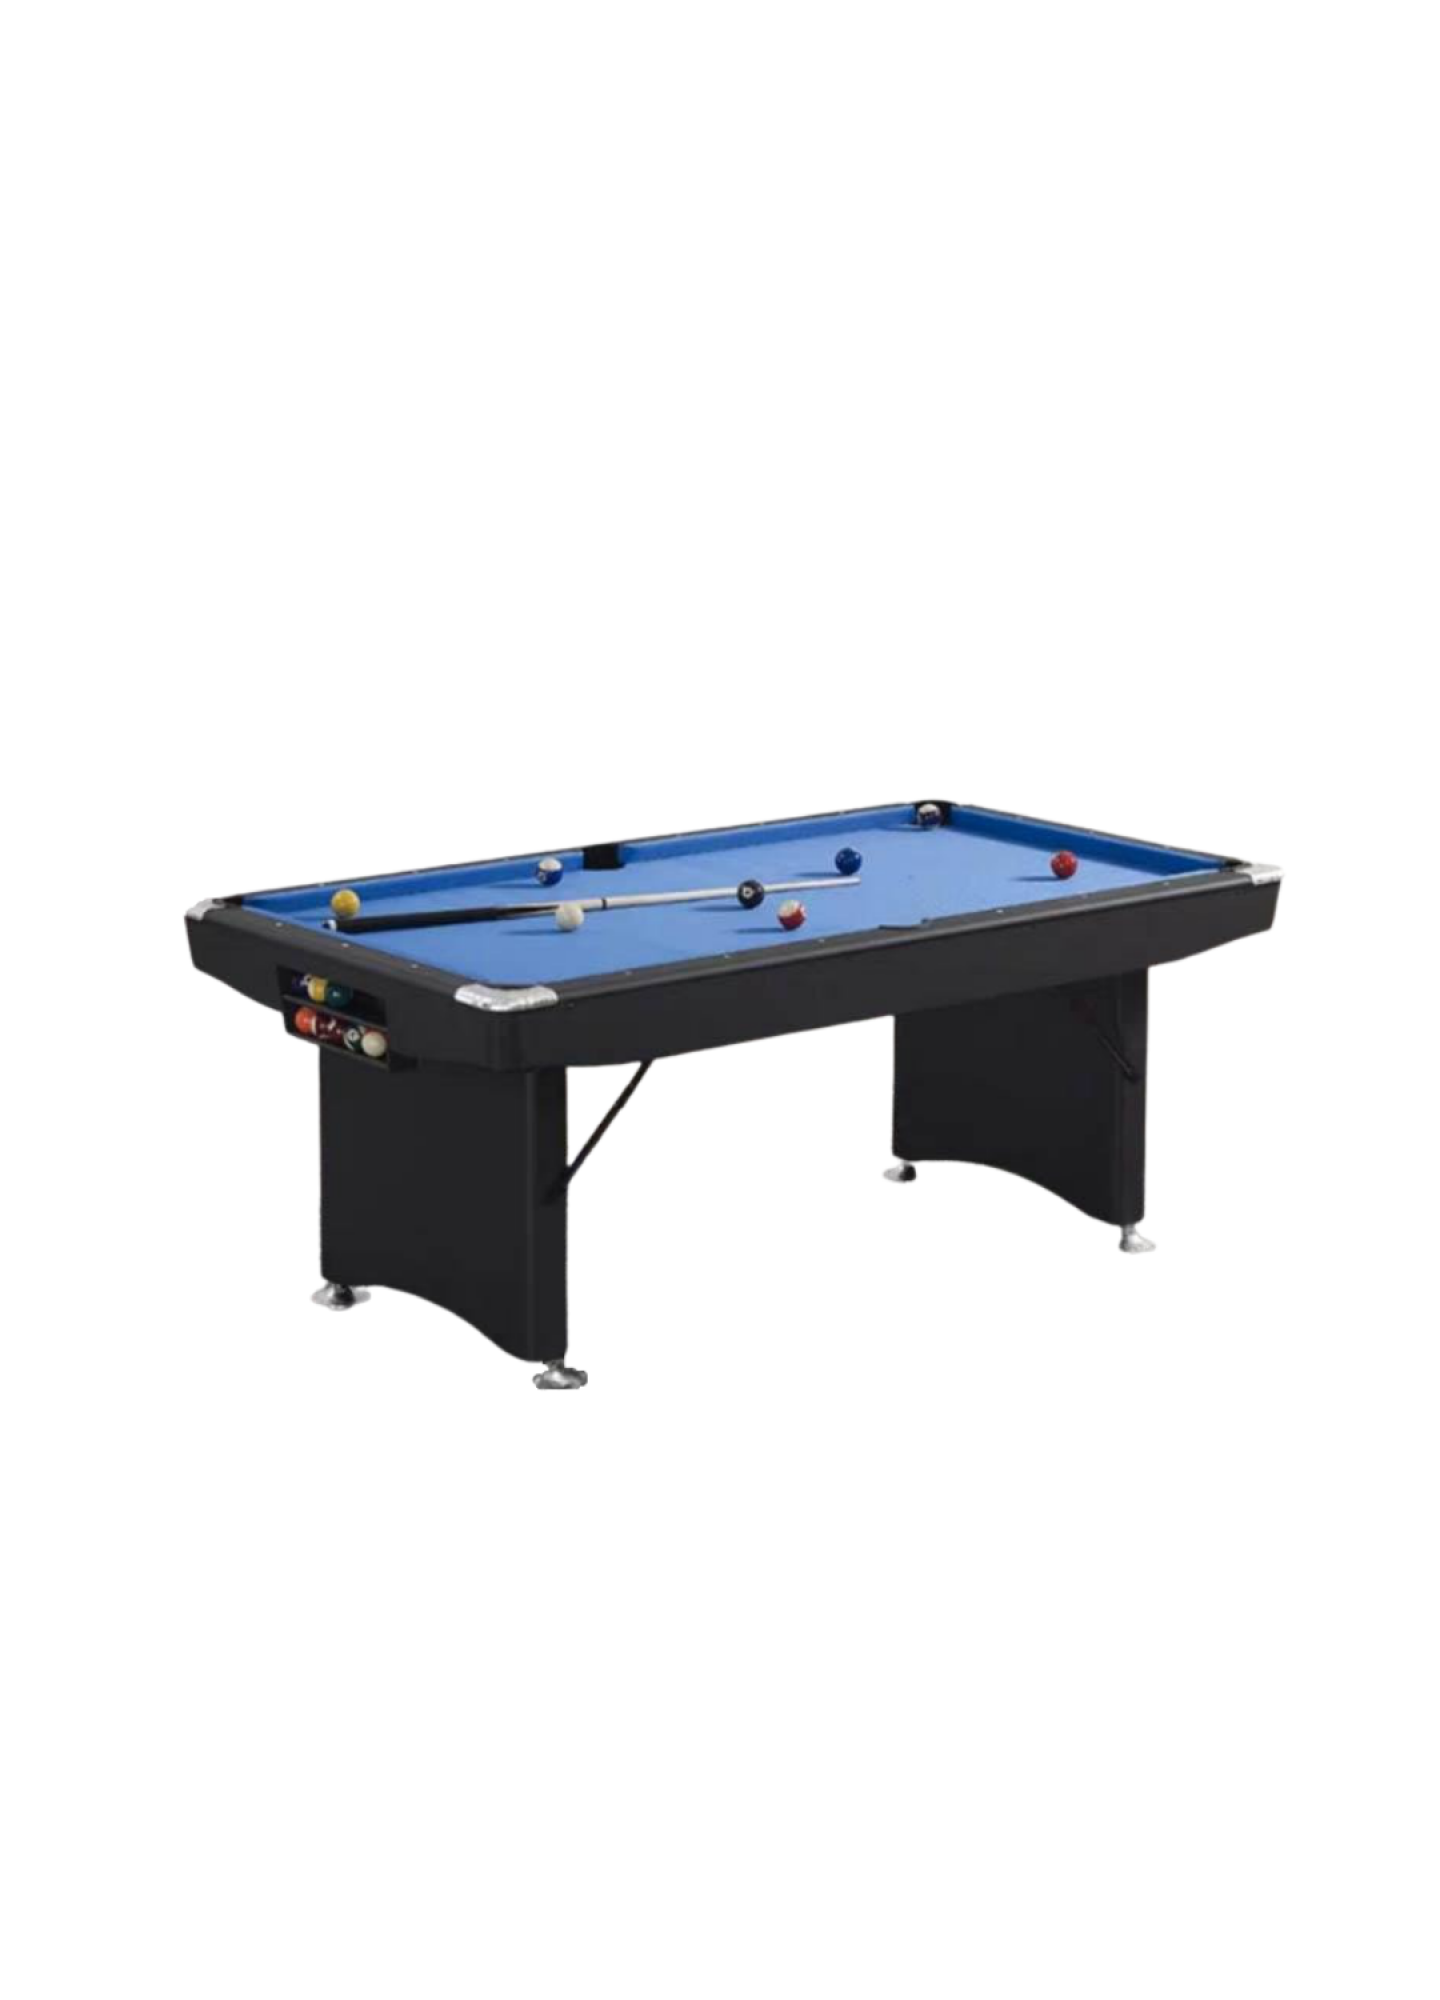 BISHOP FOLDABLE POOL TABLE (3 IN 1 TABLE)